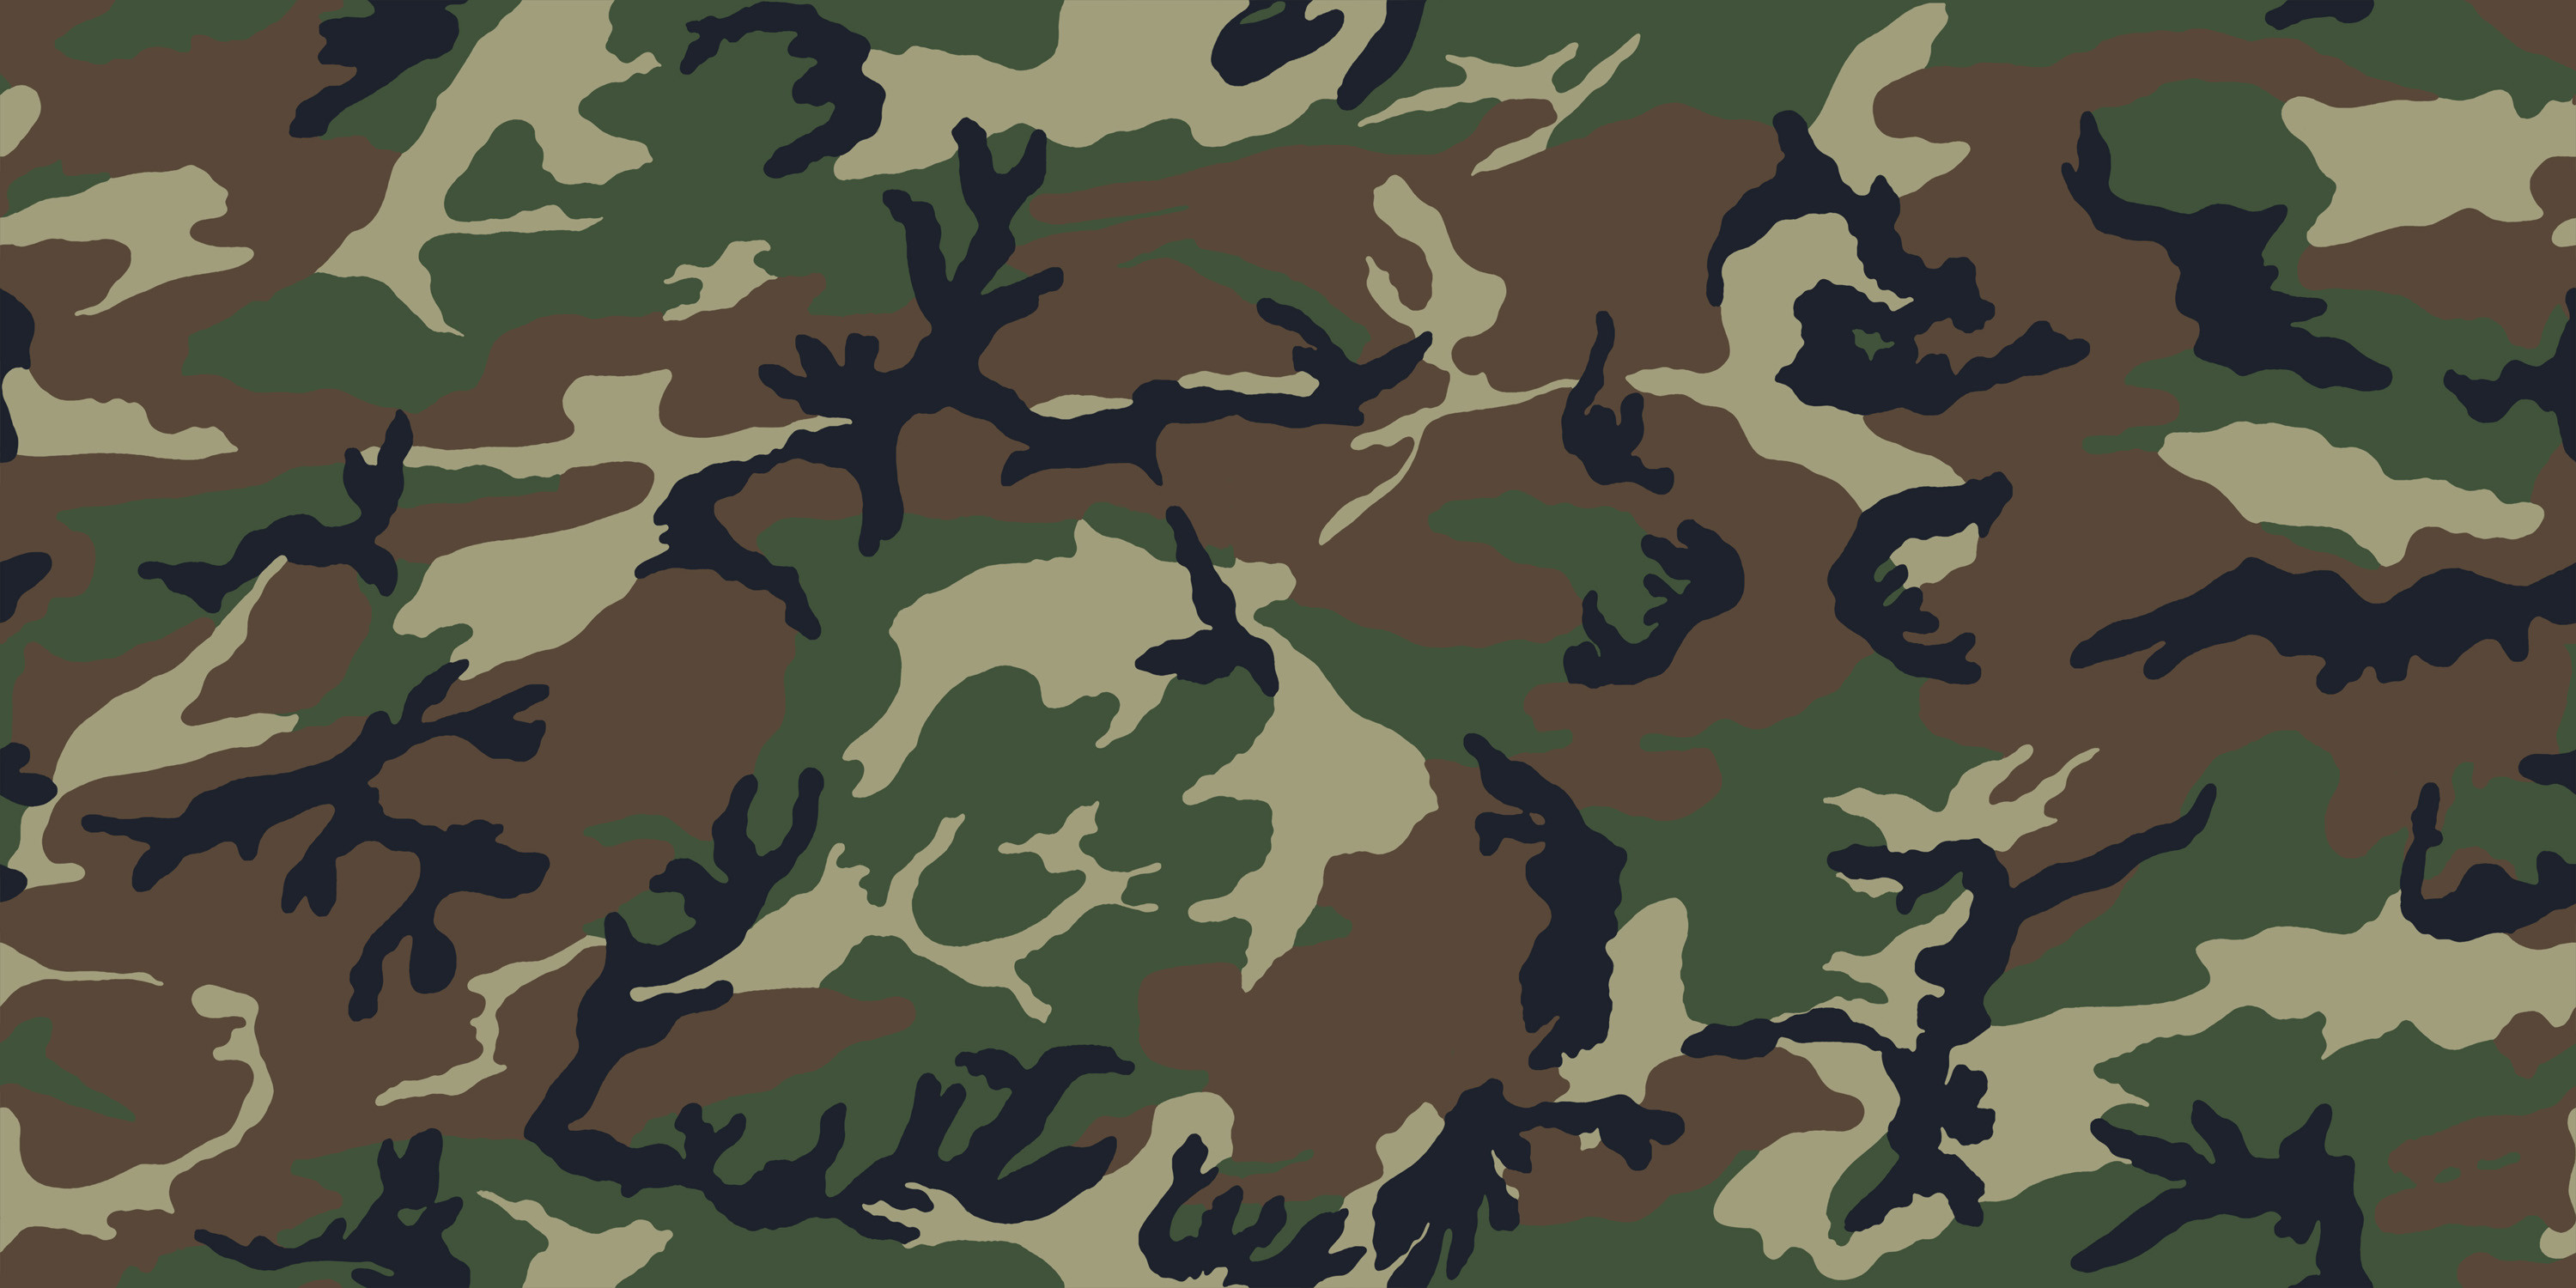 3000x1500 hd camo backgrounds #11067